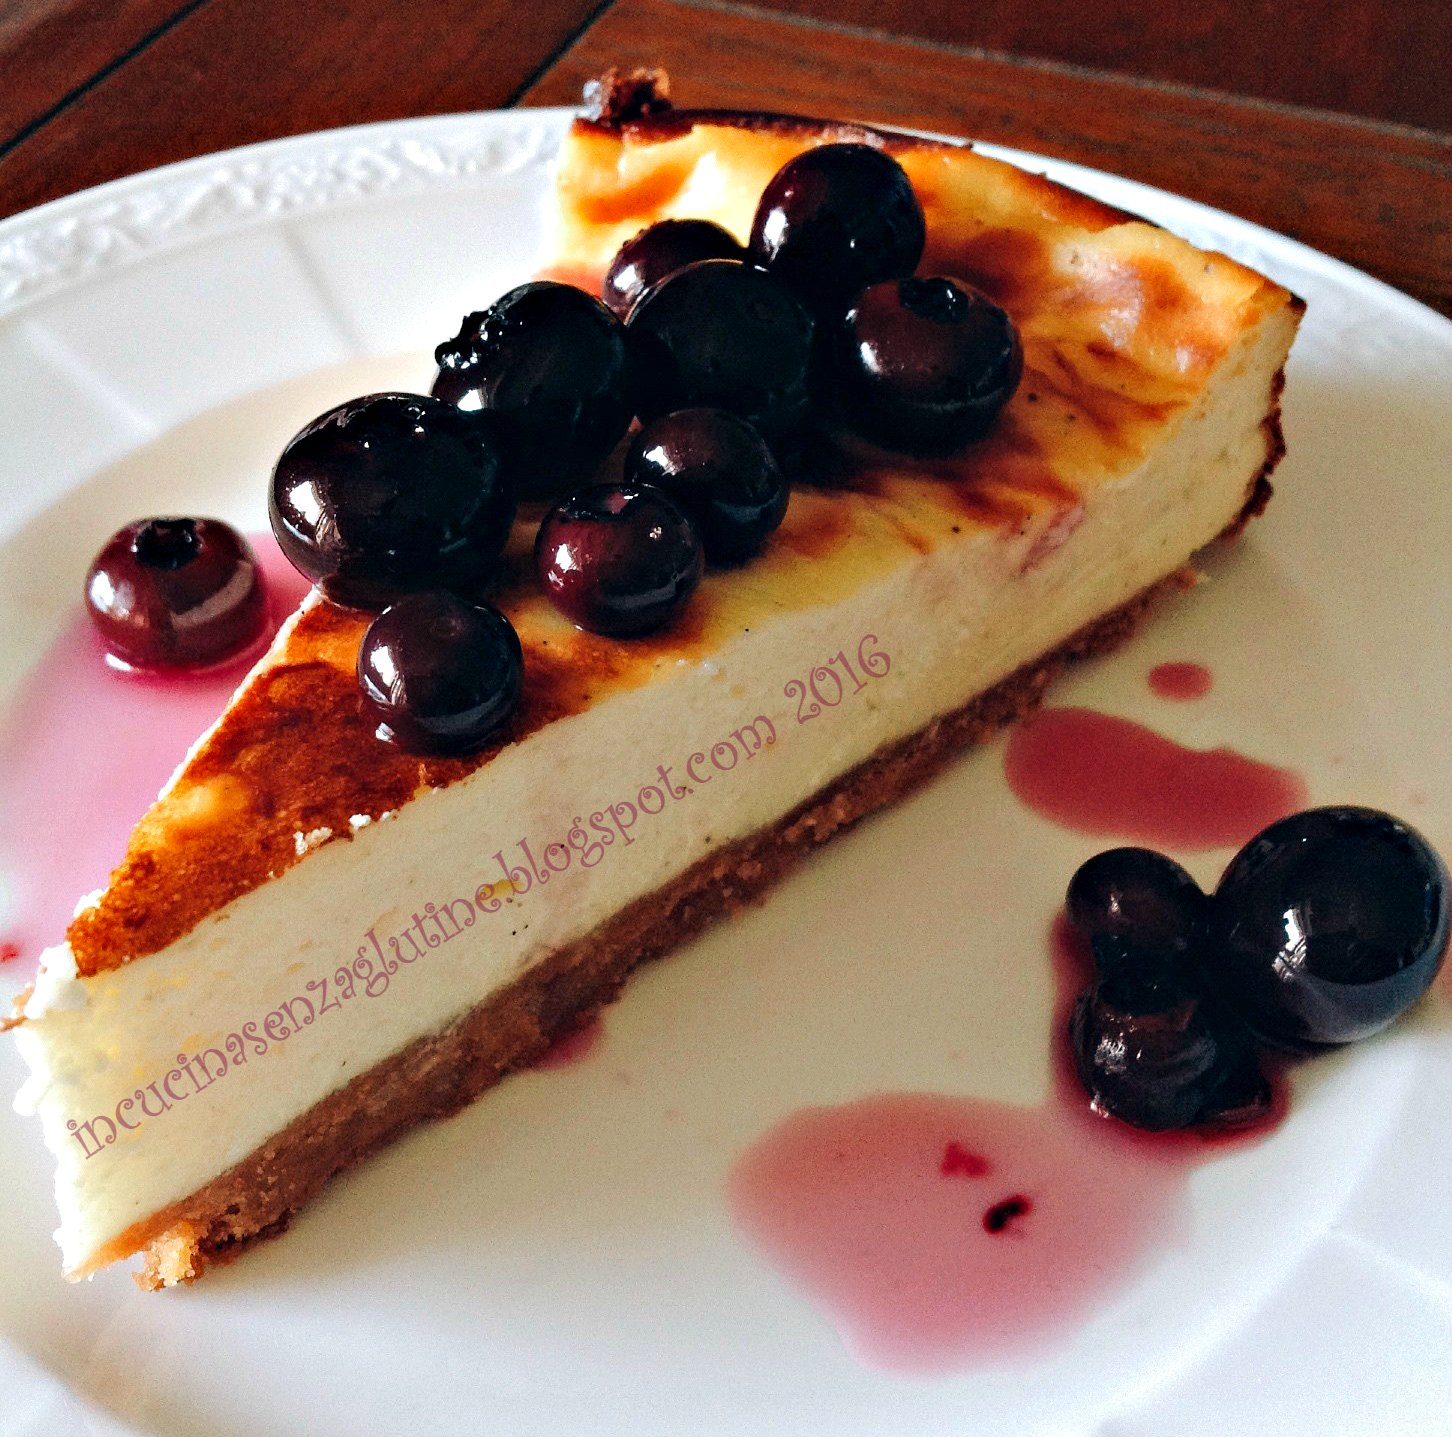 In cucina senza glutine new york vanilla cheesecake with blueberries cheesecake senza - Cucina senza glutine ...